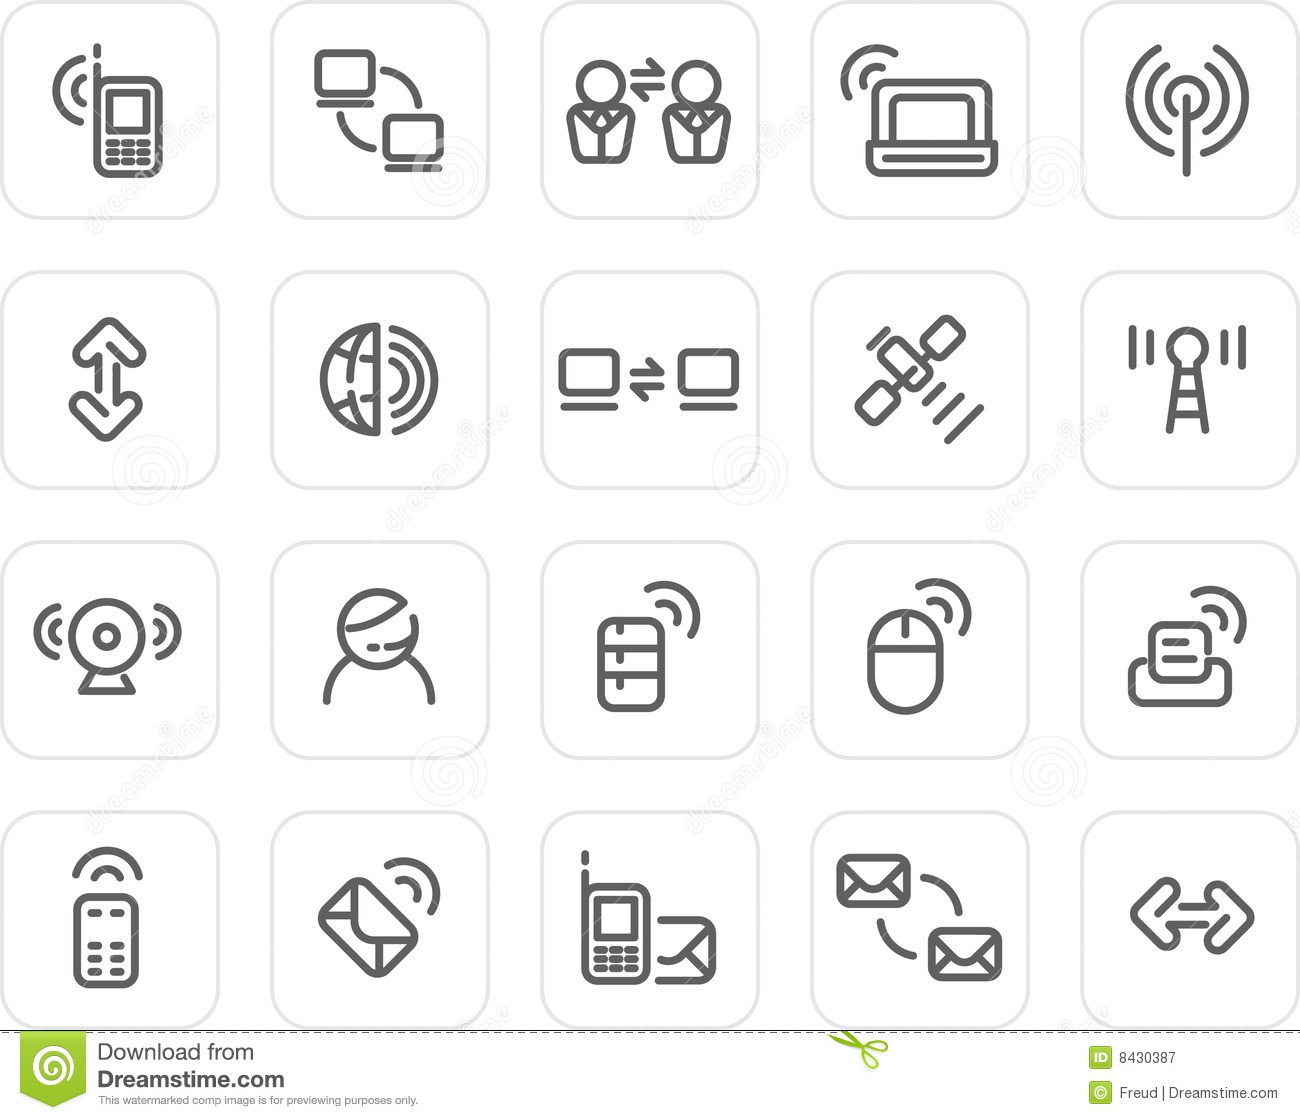 Free technology icon vector 277270 | download technology icon.